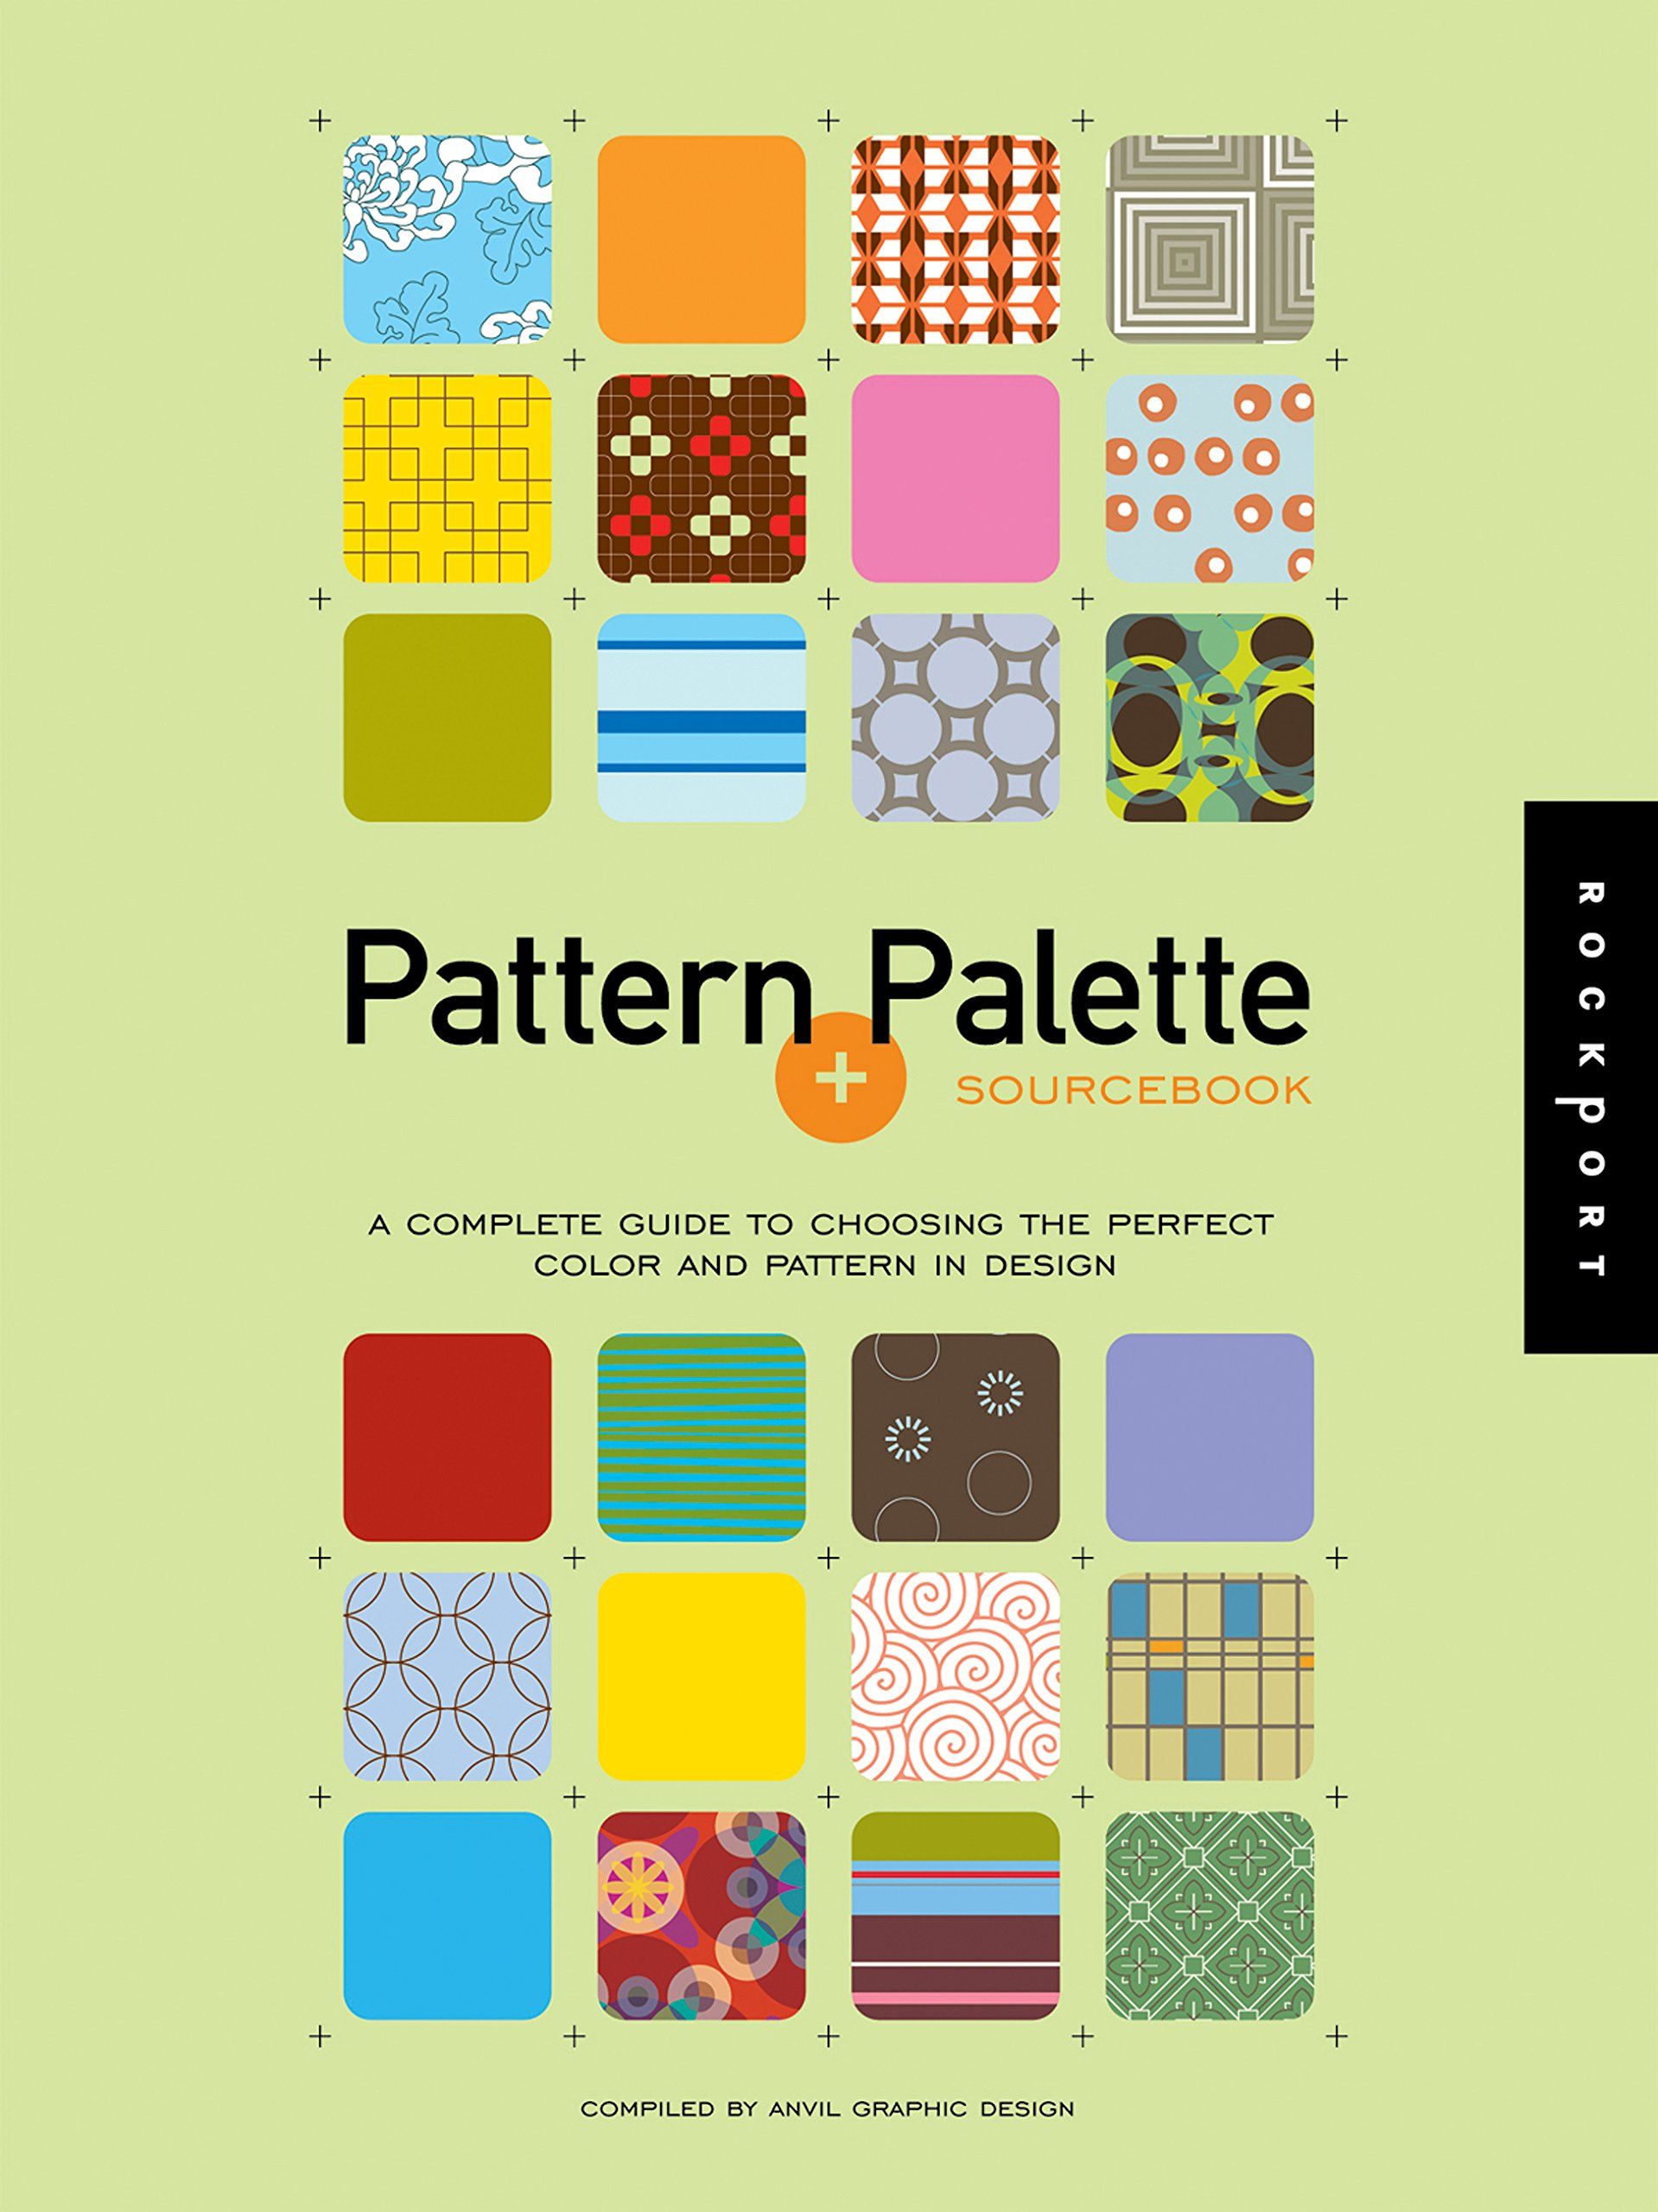 Patterns and Palette Sourcebook: A Complete Guide to Choosing the Perfect Color and Pattern in Design